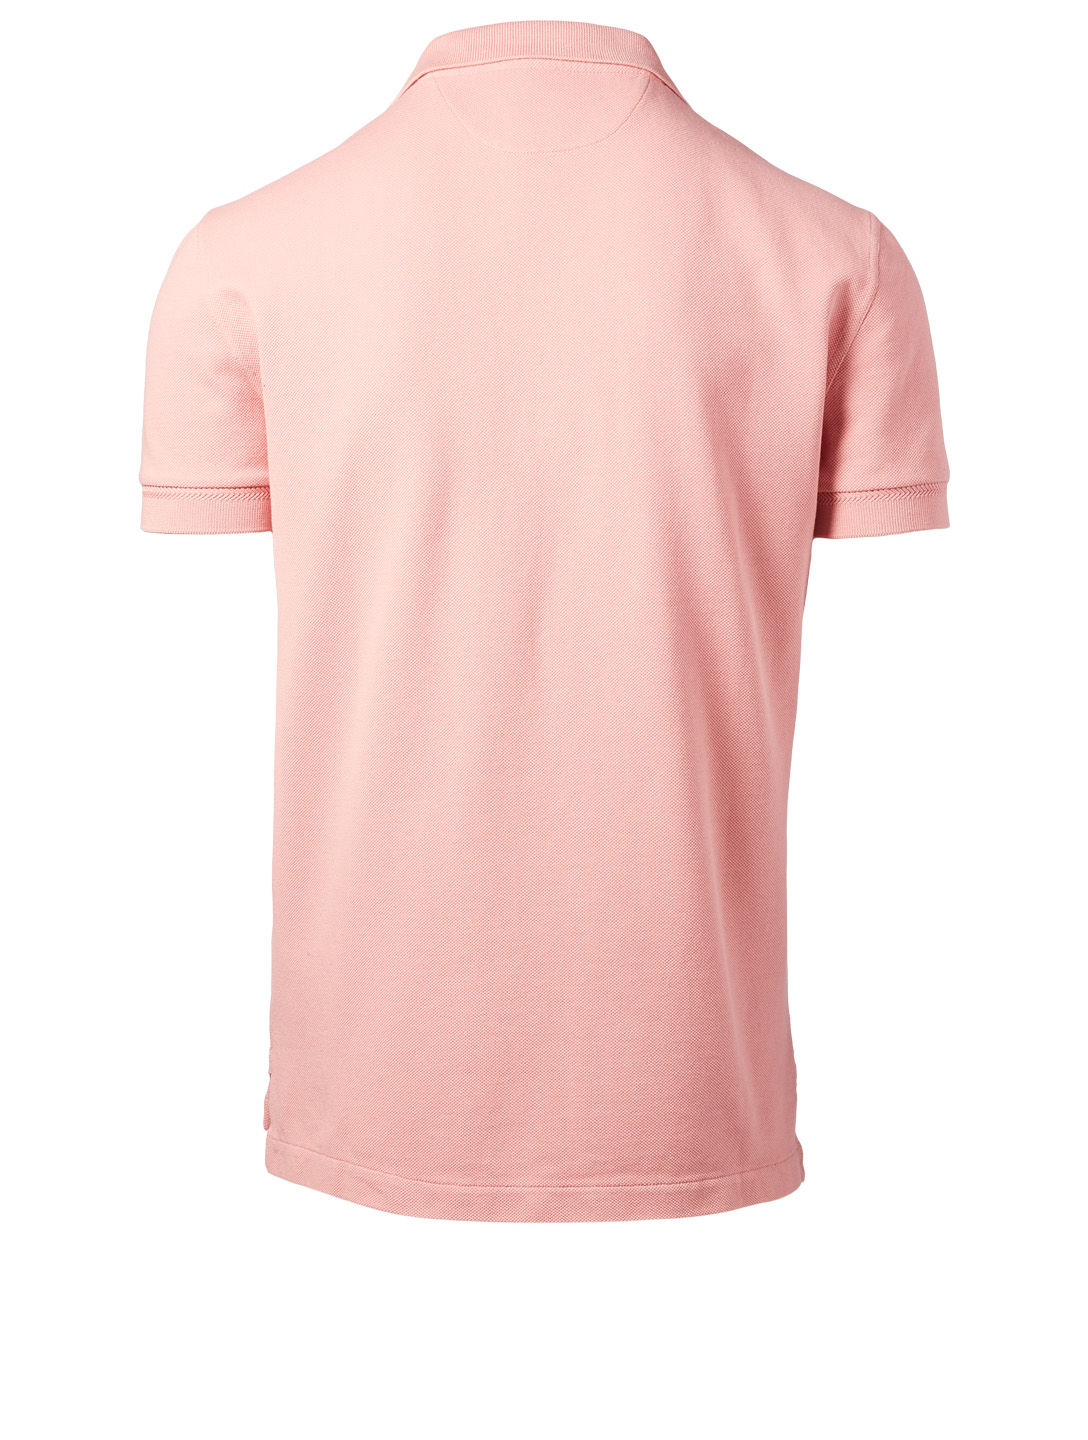 TOM FORD Solid Polo Shirt Men's Pink